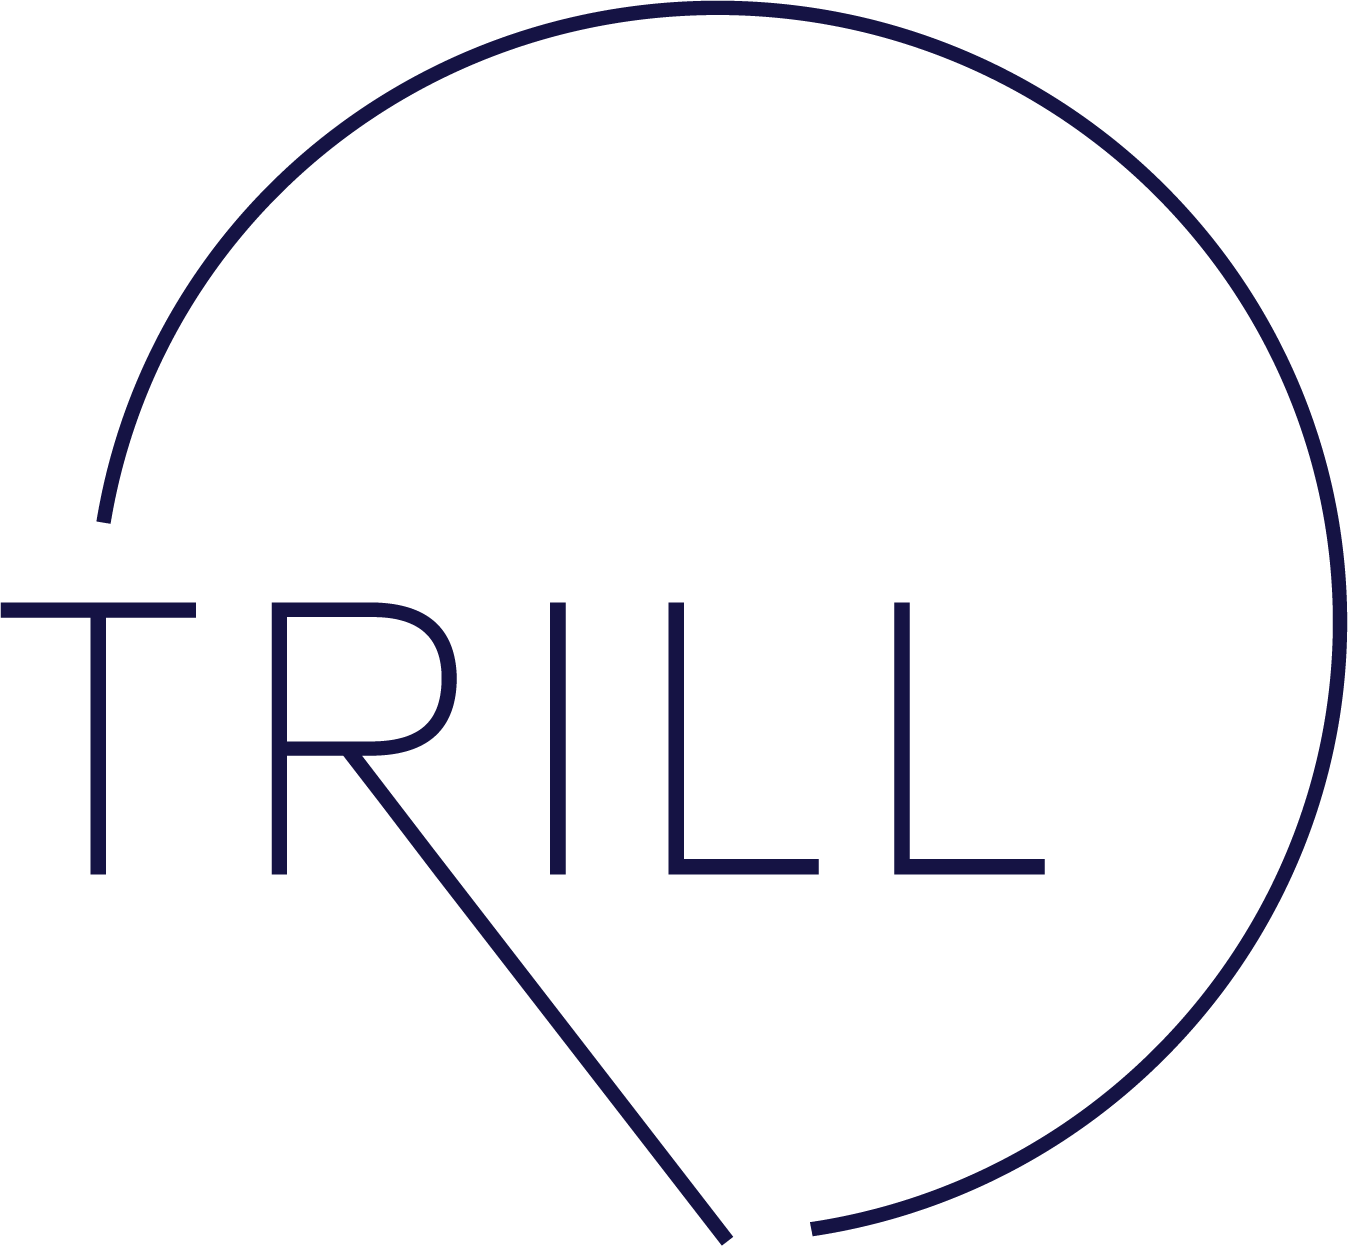 trill_logo.png